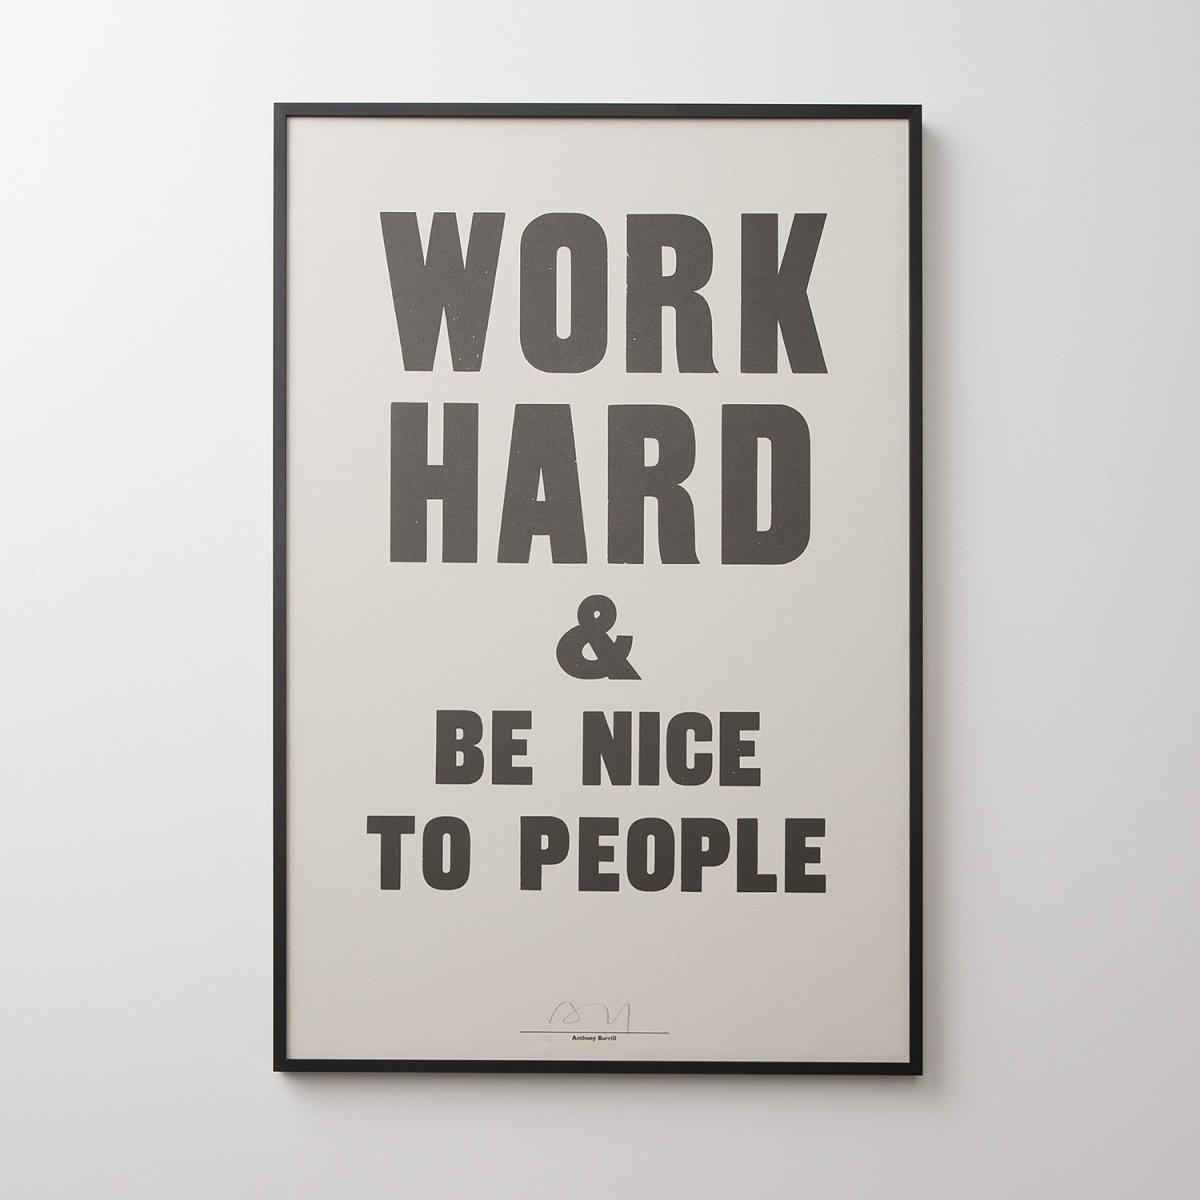 Framed black and white print that reads Word Hard & Be Nice To People